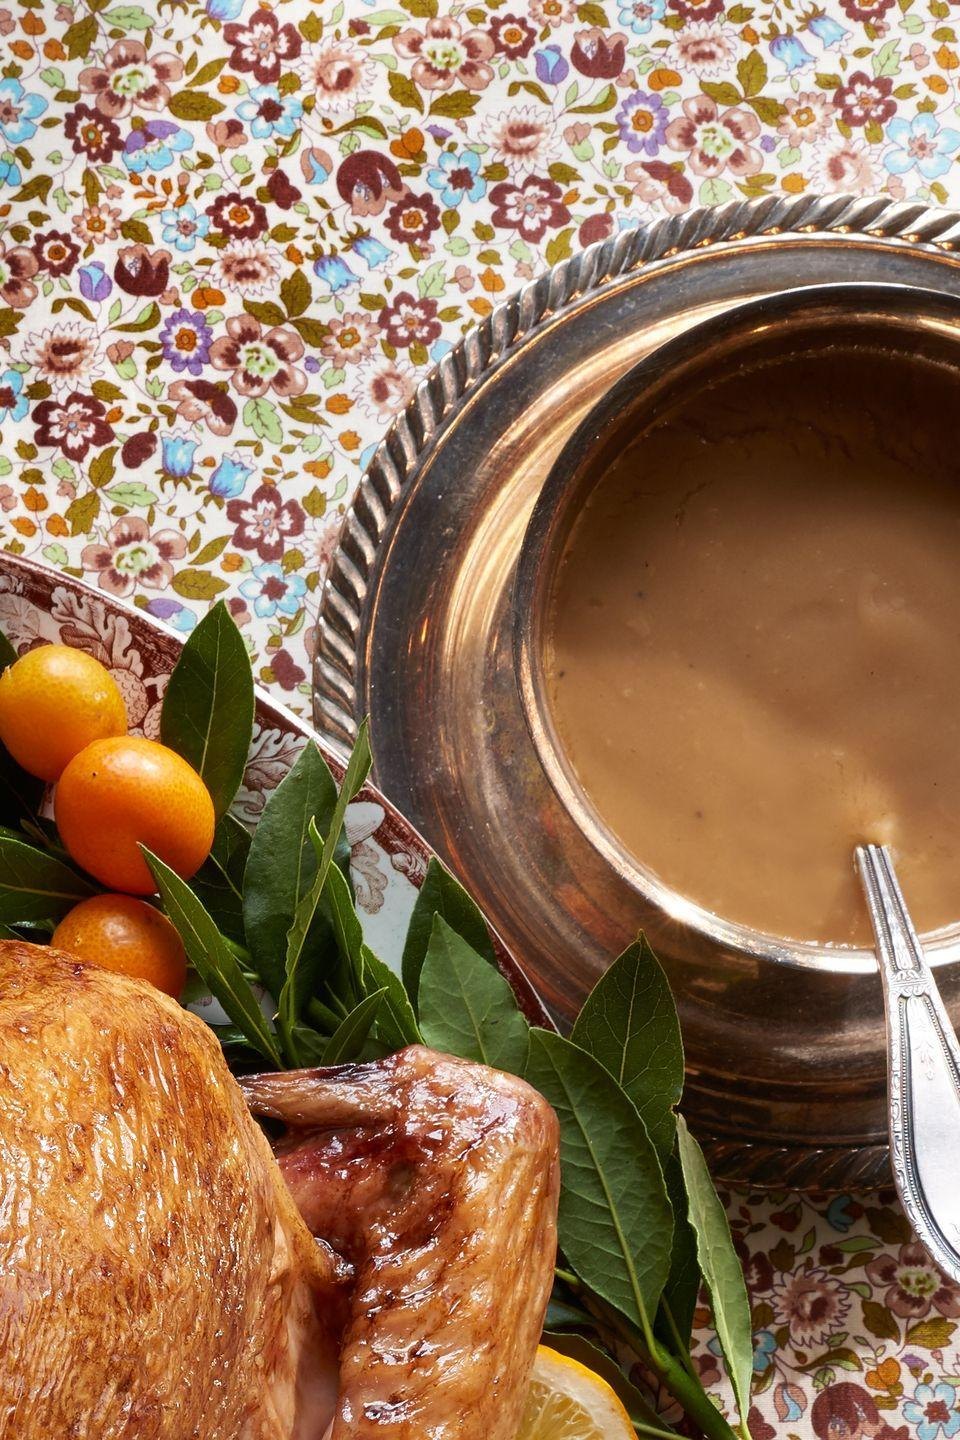 """<p>Beer and orange juice complement each other nicely in this sweet and savory gravy.</p><p>Get the recipe from <a href=""""/cooking/recipe-ideas/recipes/a45116/bay-leaf-beer-and-orange-gravy/"""" data-ylk=""""slk:Delish"""" class=""""link rapid-noclick-resp"""">Delish</a>.</p>"""